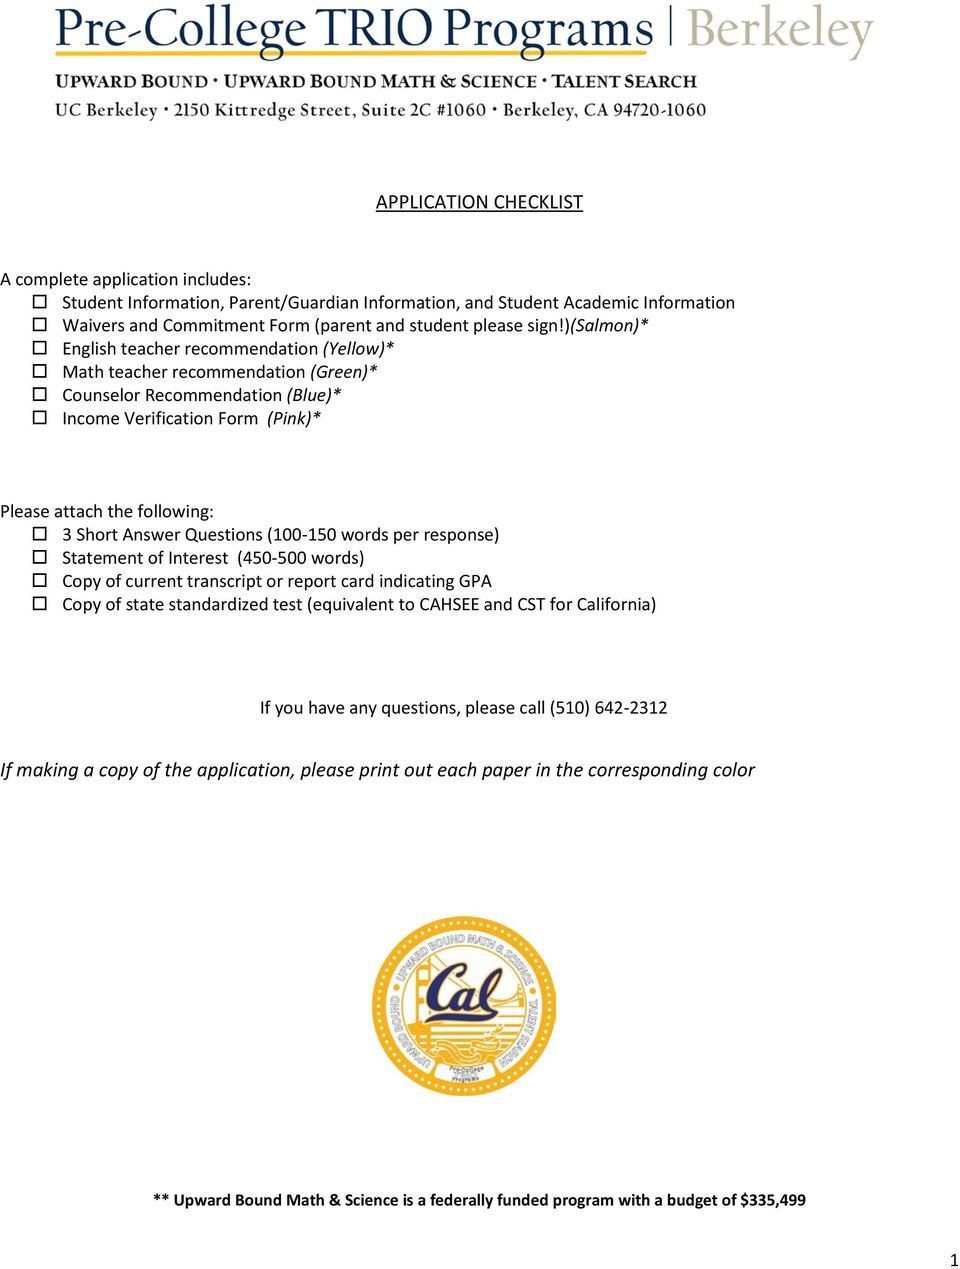 Questions (100-150 words per response) Statement of Interest (450-500 words) Copy of current transcript or report card indicating GPA Copy of state standardized test (equivalent to CAHSEE and CST for